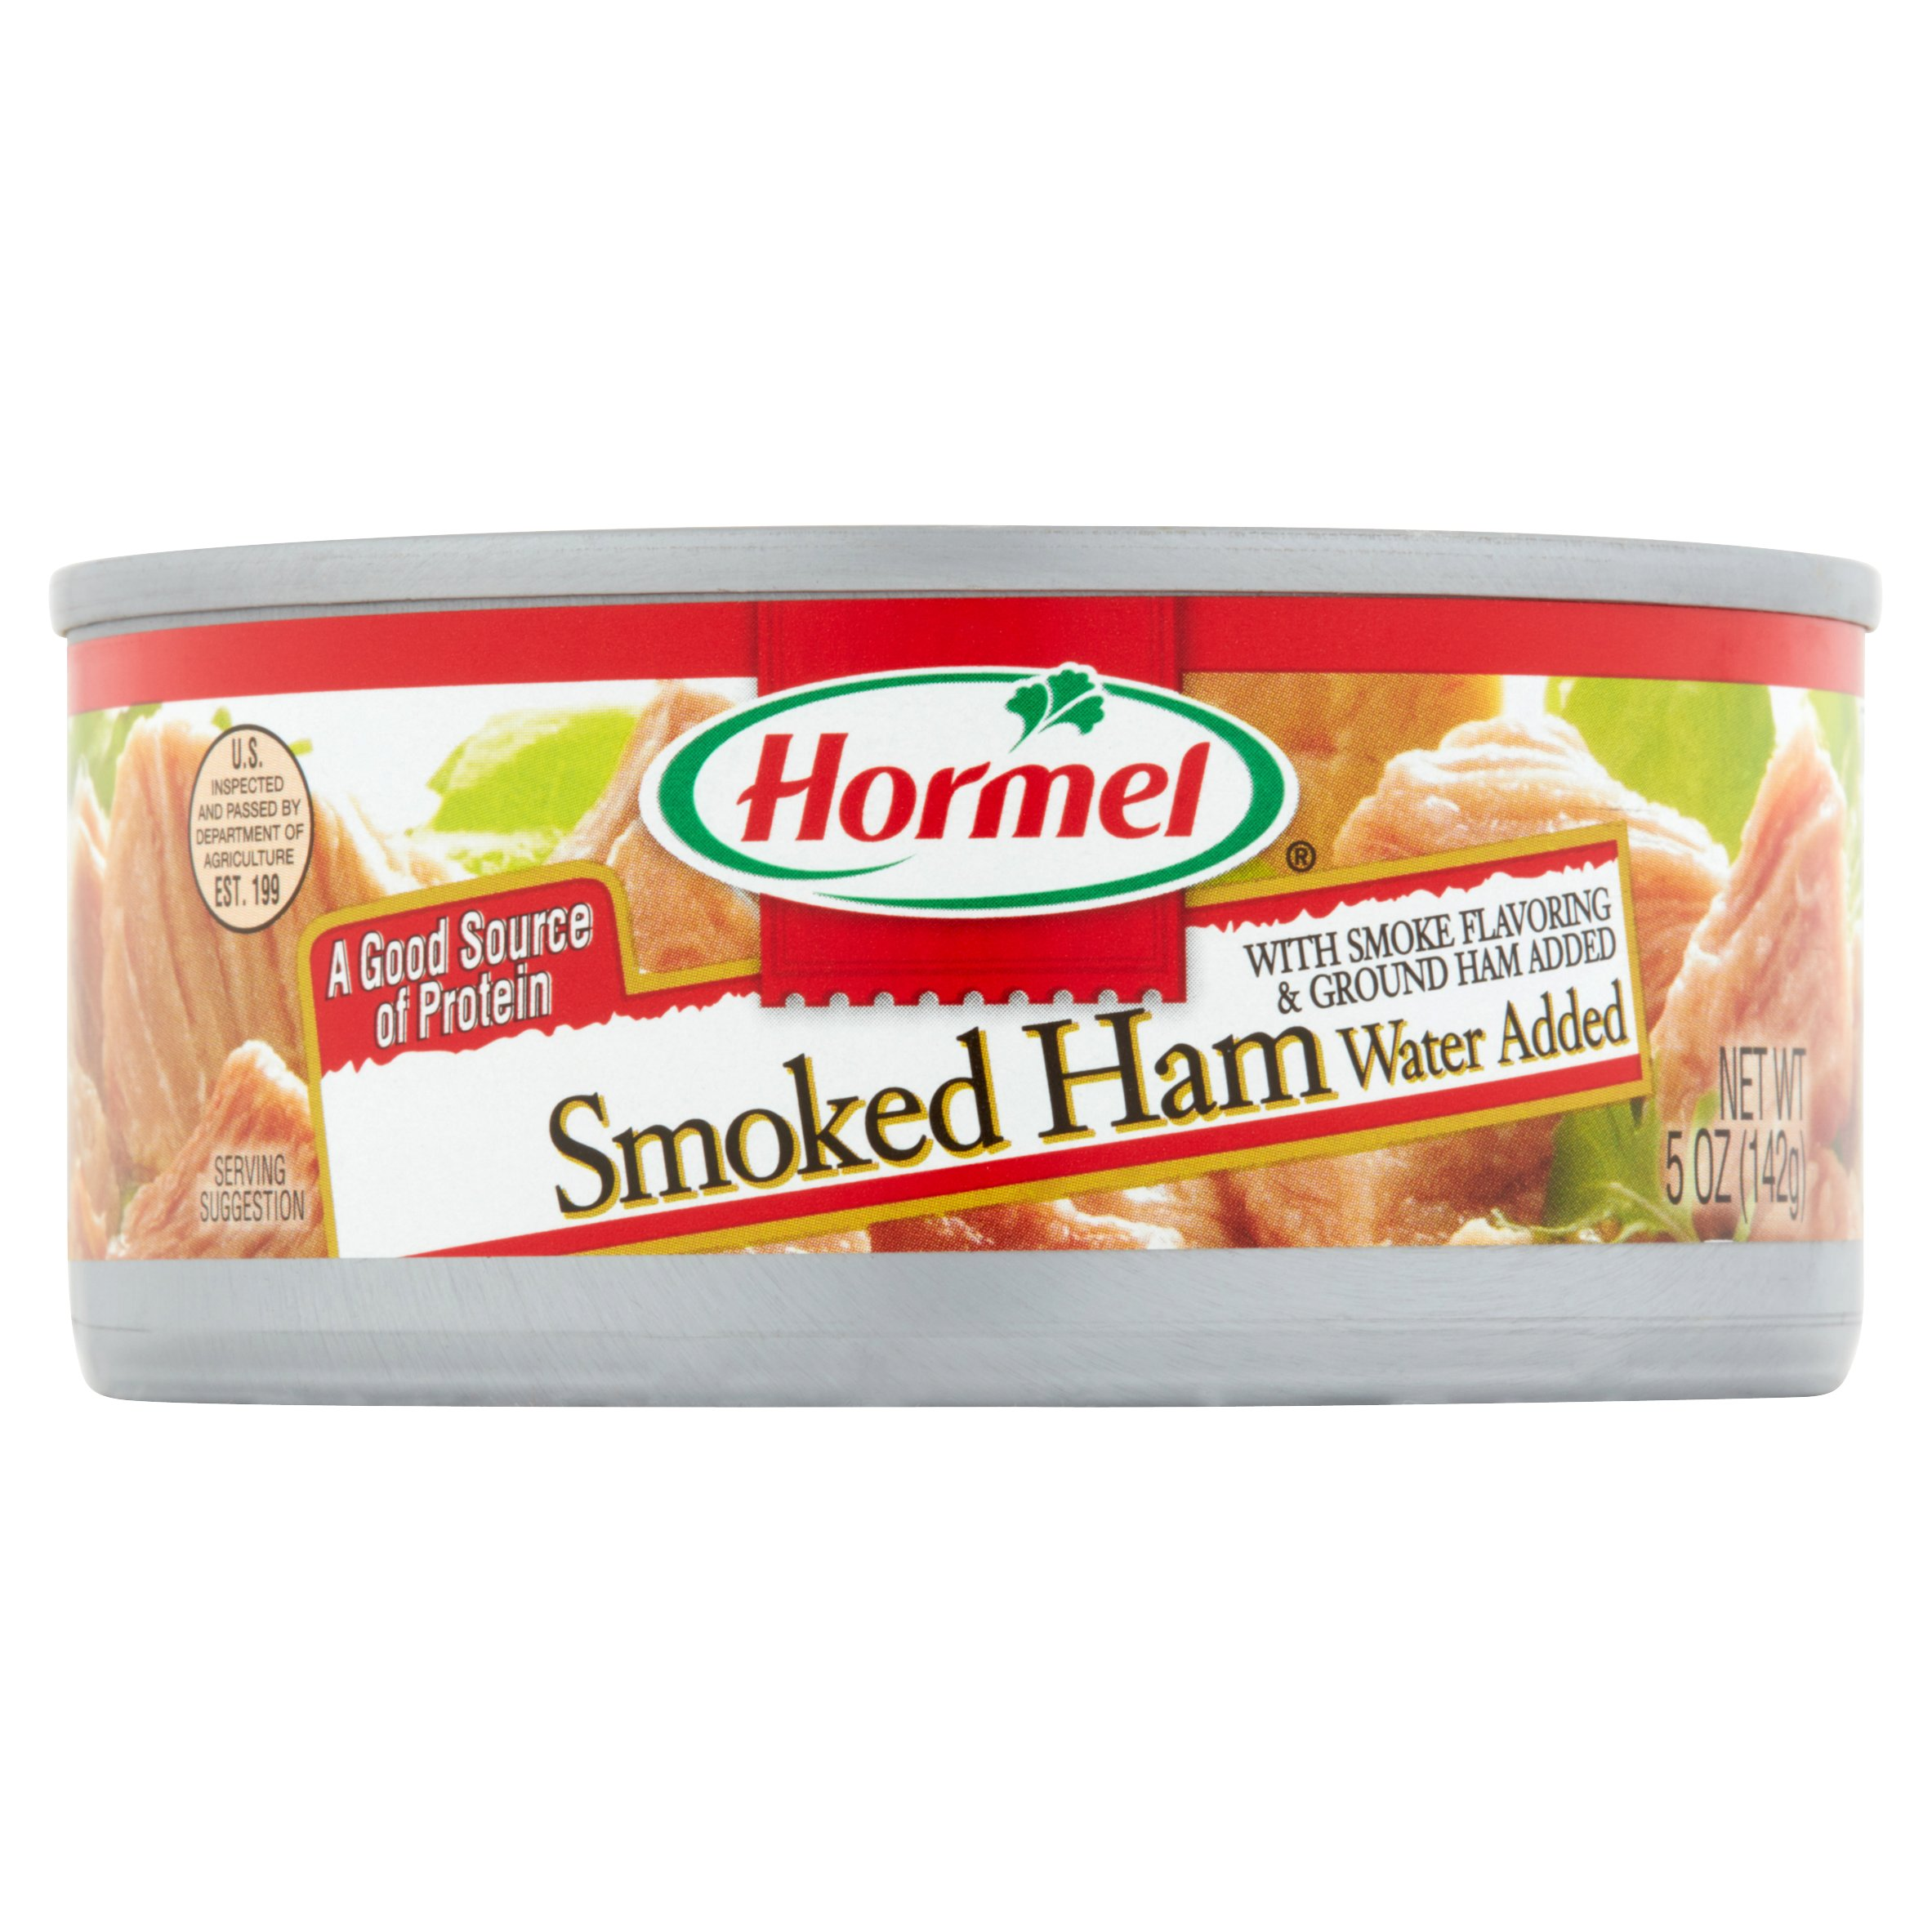 Hormel Smoked Ham 5 oz. Can. by Hormel